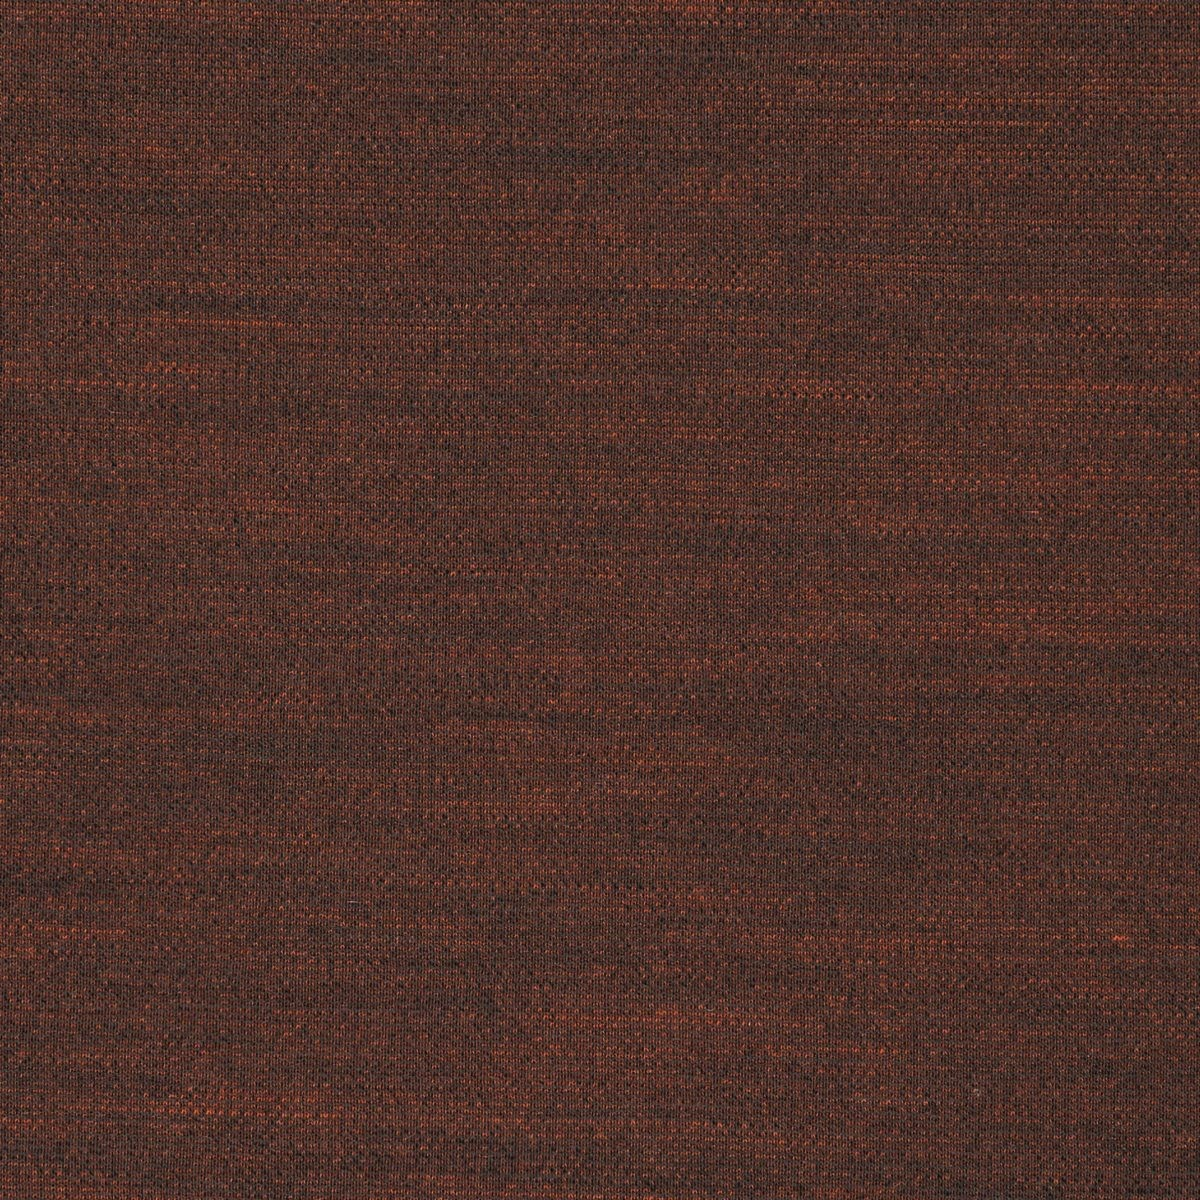 UNIFORM MELANGE SIENNA 13O611